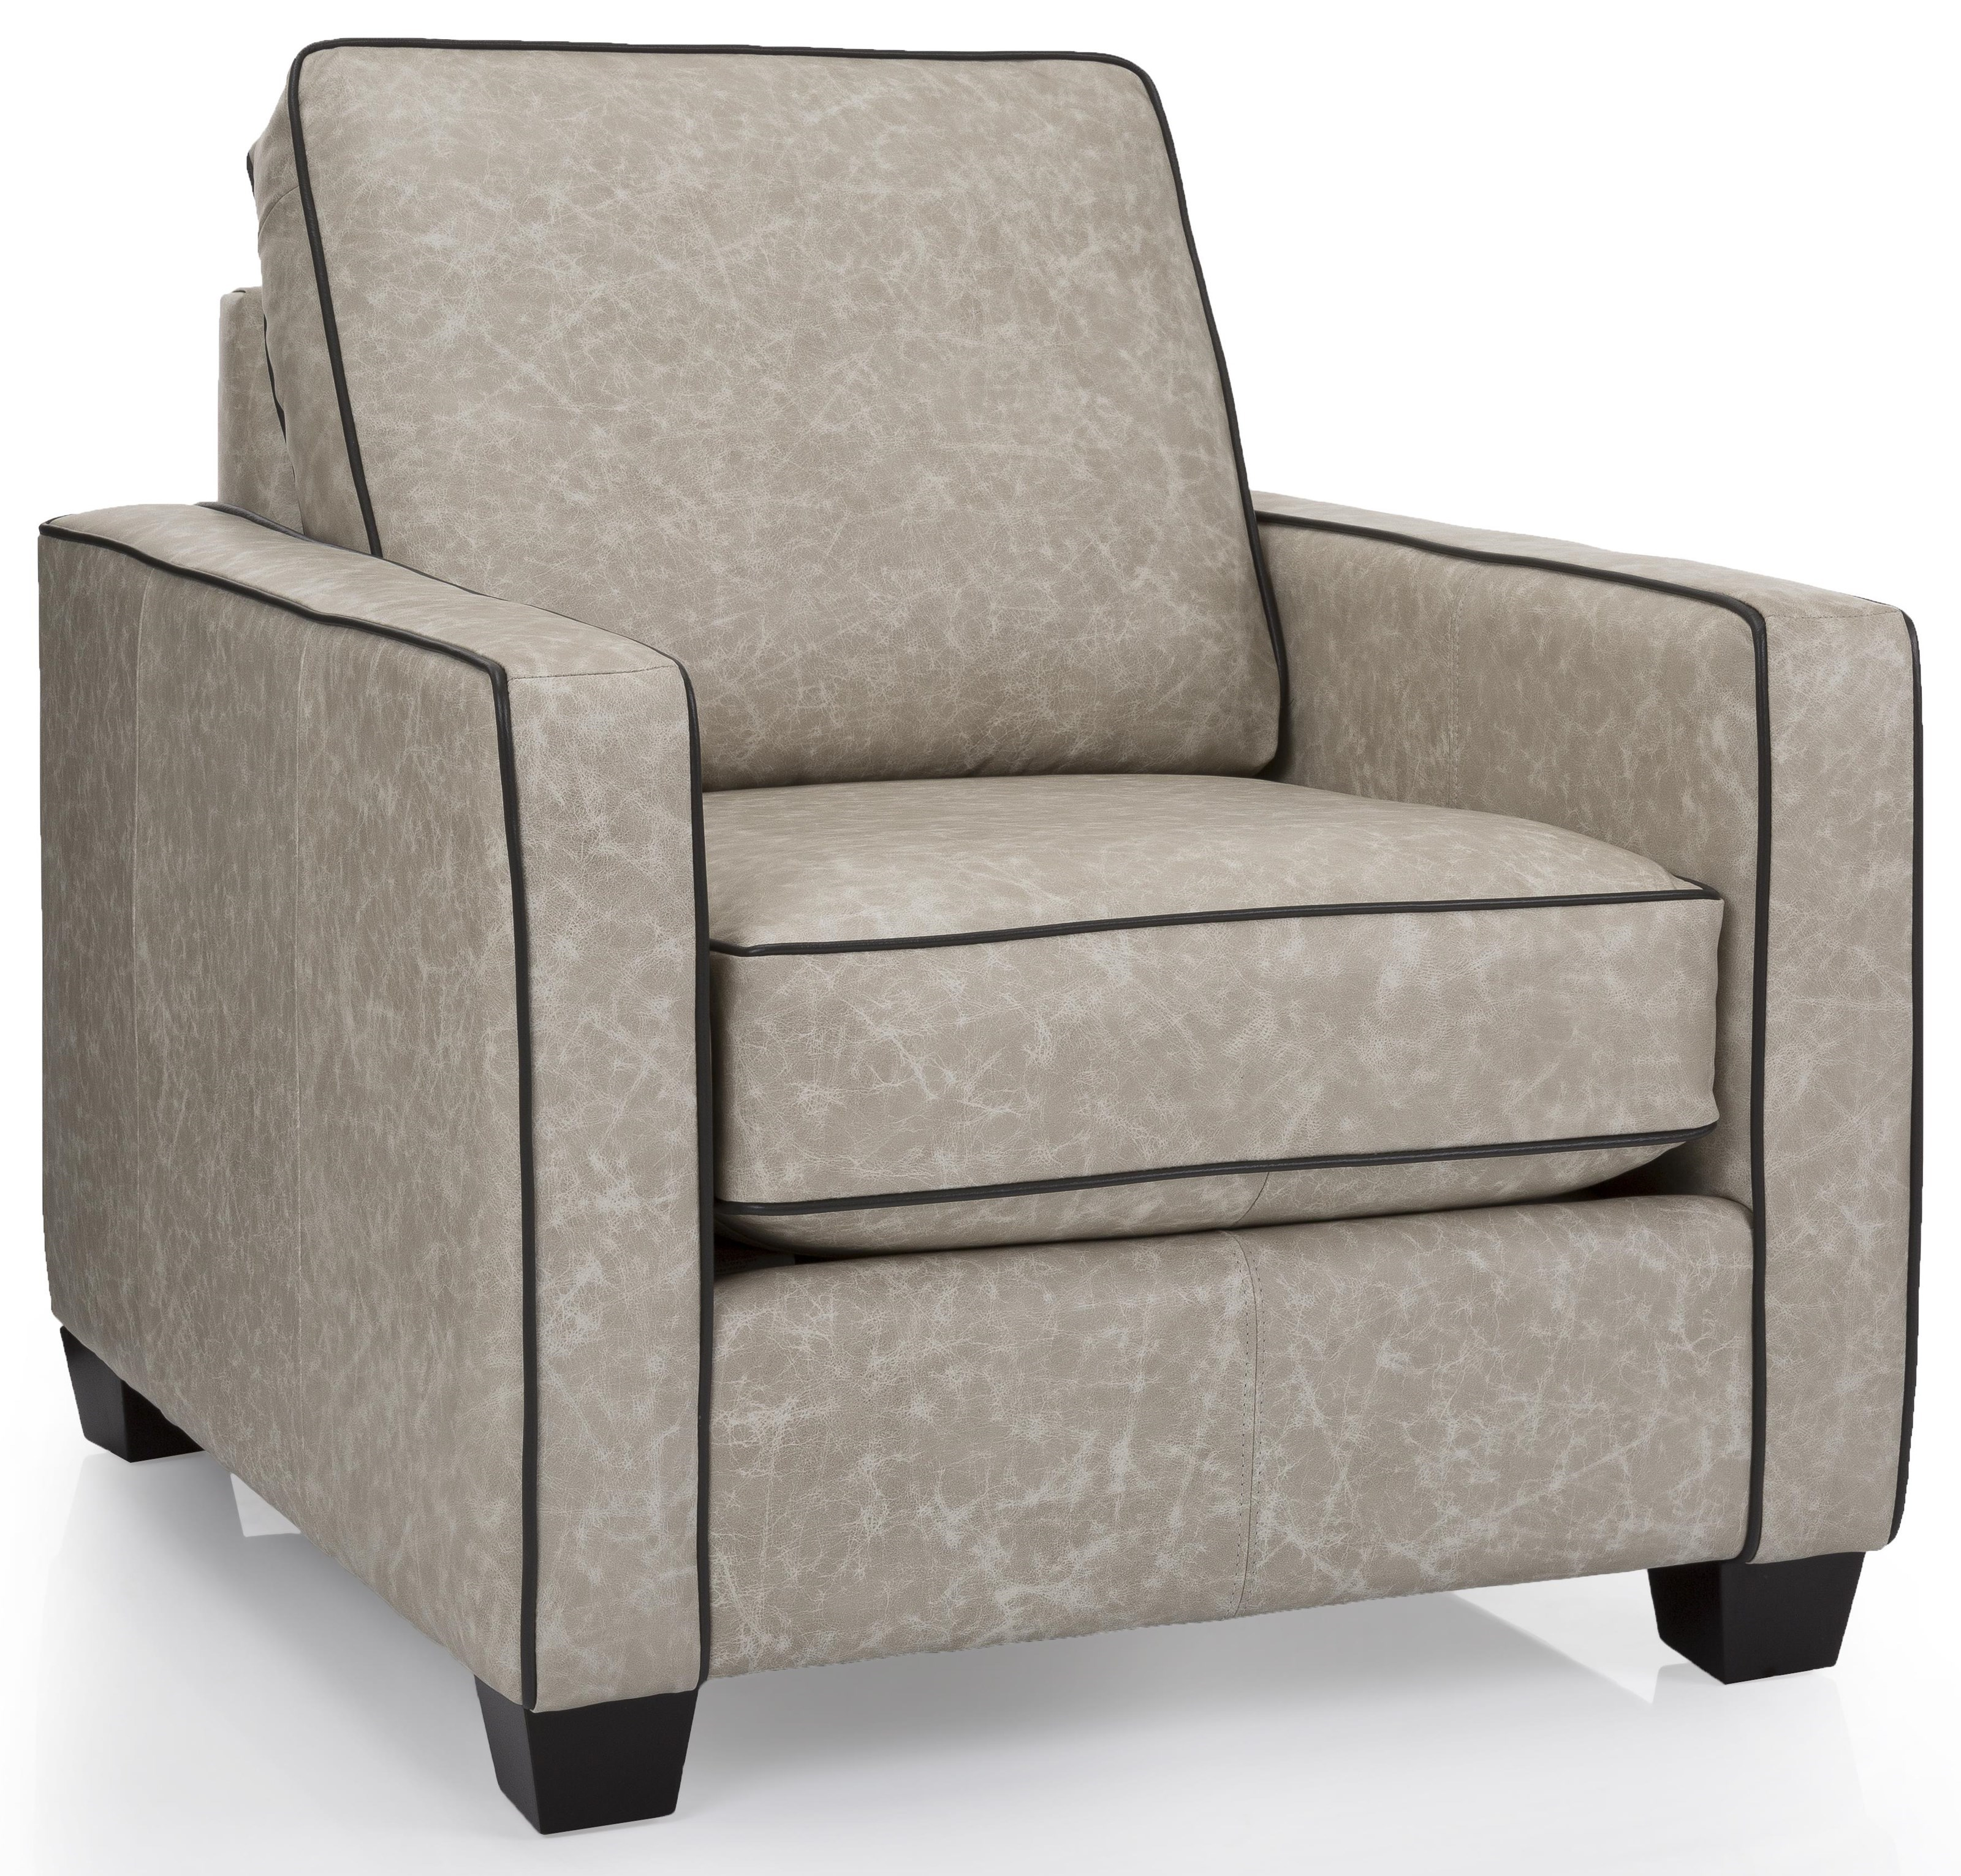 Image of: Taelor Designs Lara Contemporary Leather Chair With Track Arms Bennett S Furniture And Mattresses Upholstered Chairs